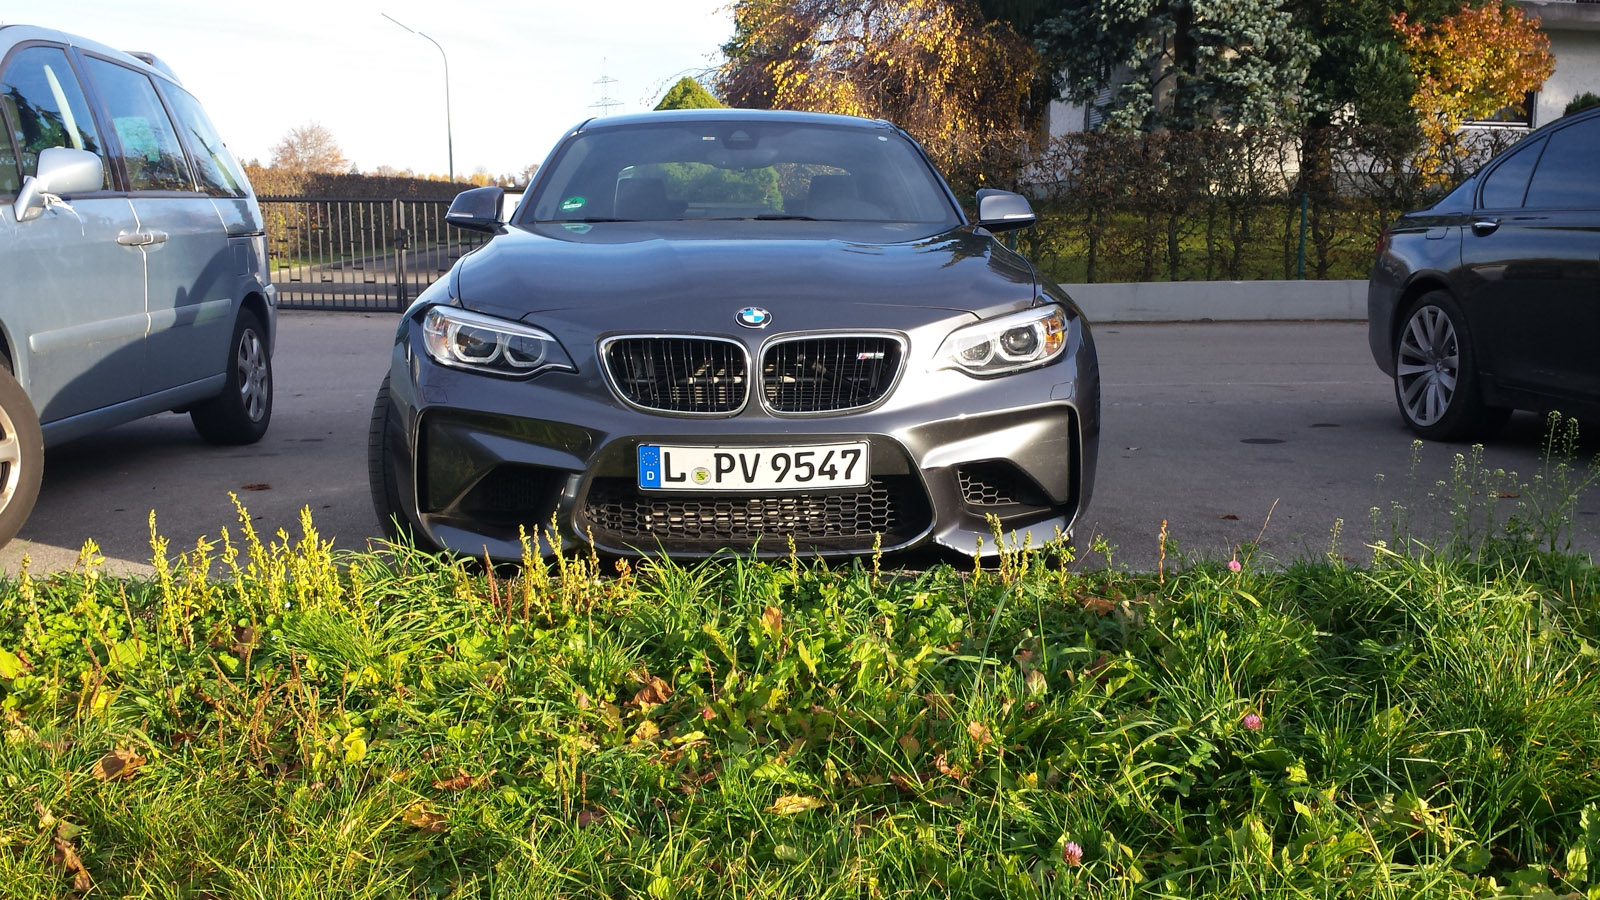 First Shots Of Bmw M2 In Mineral Grey Wearing Terrible